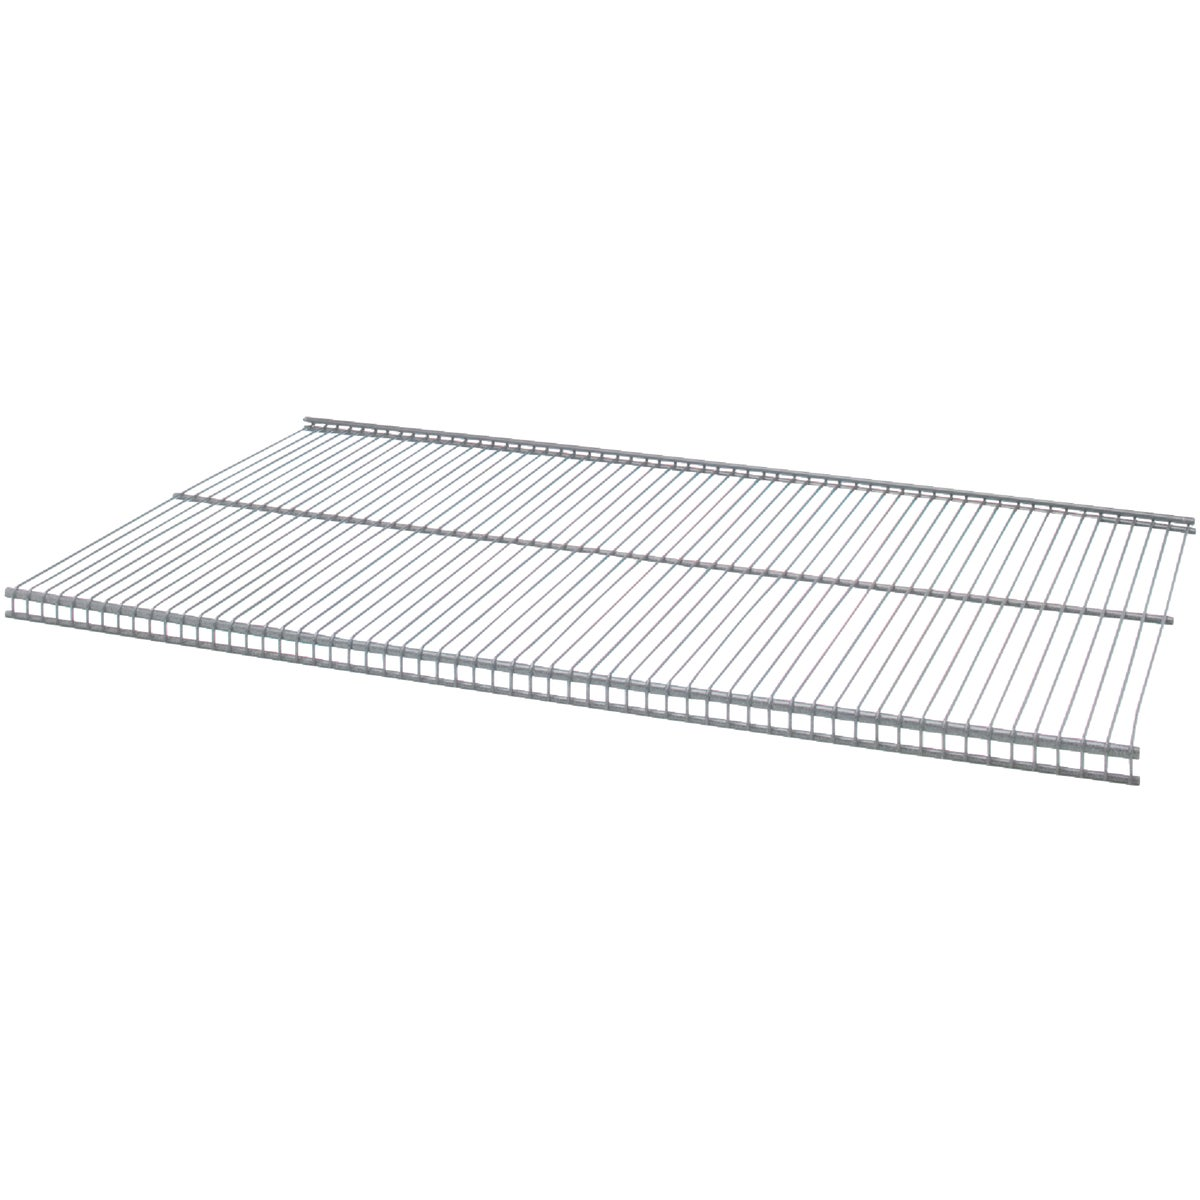 12X48 NKL PROFILE SHELF - 1813124845 by Schulte Corp